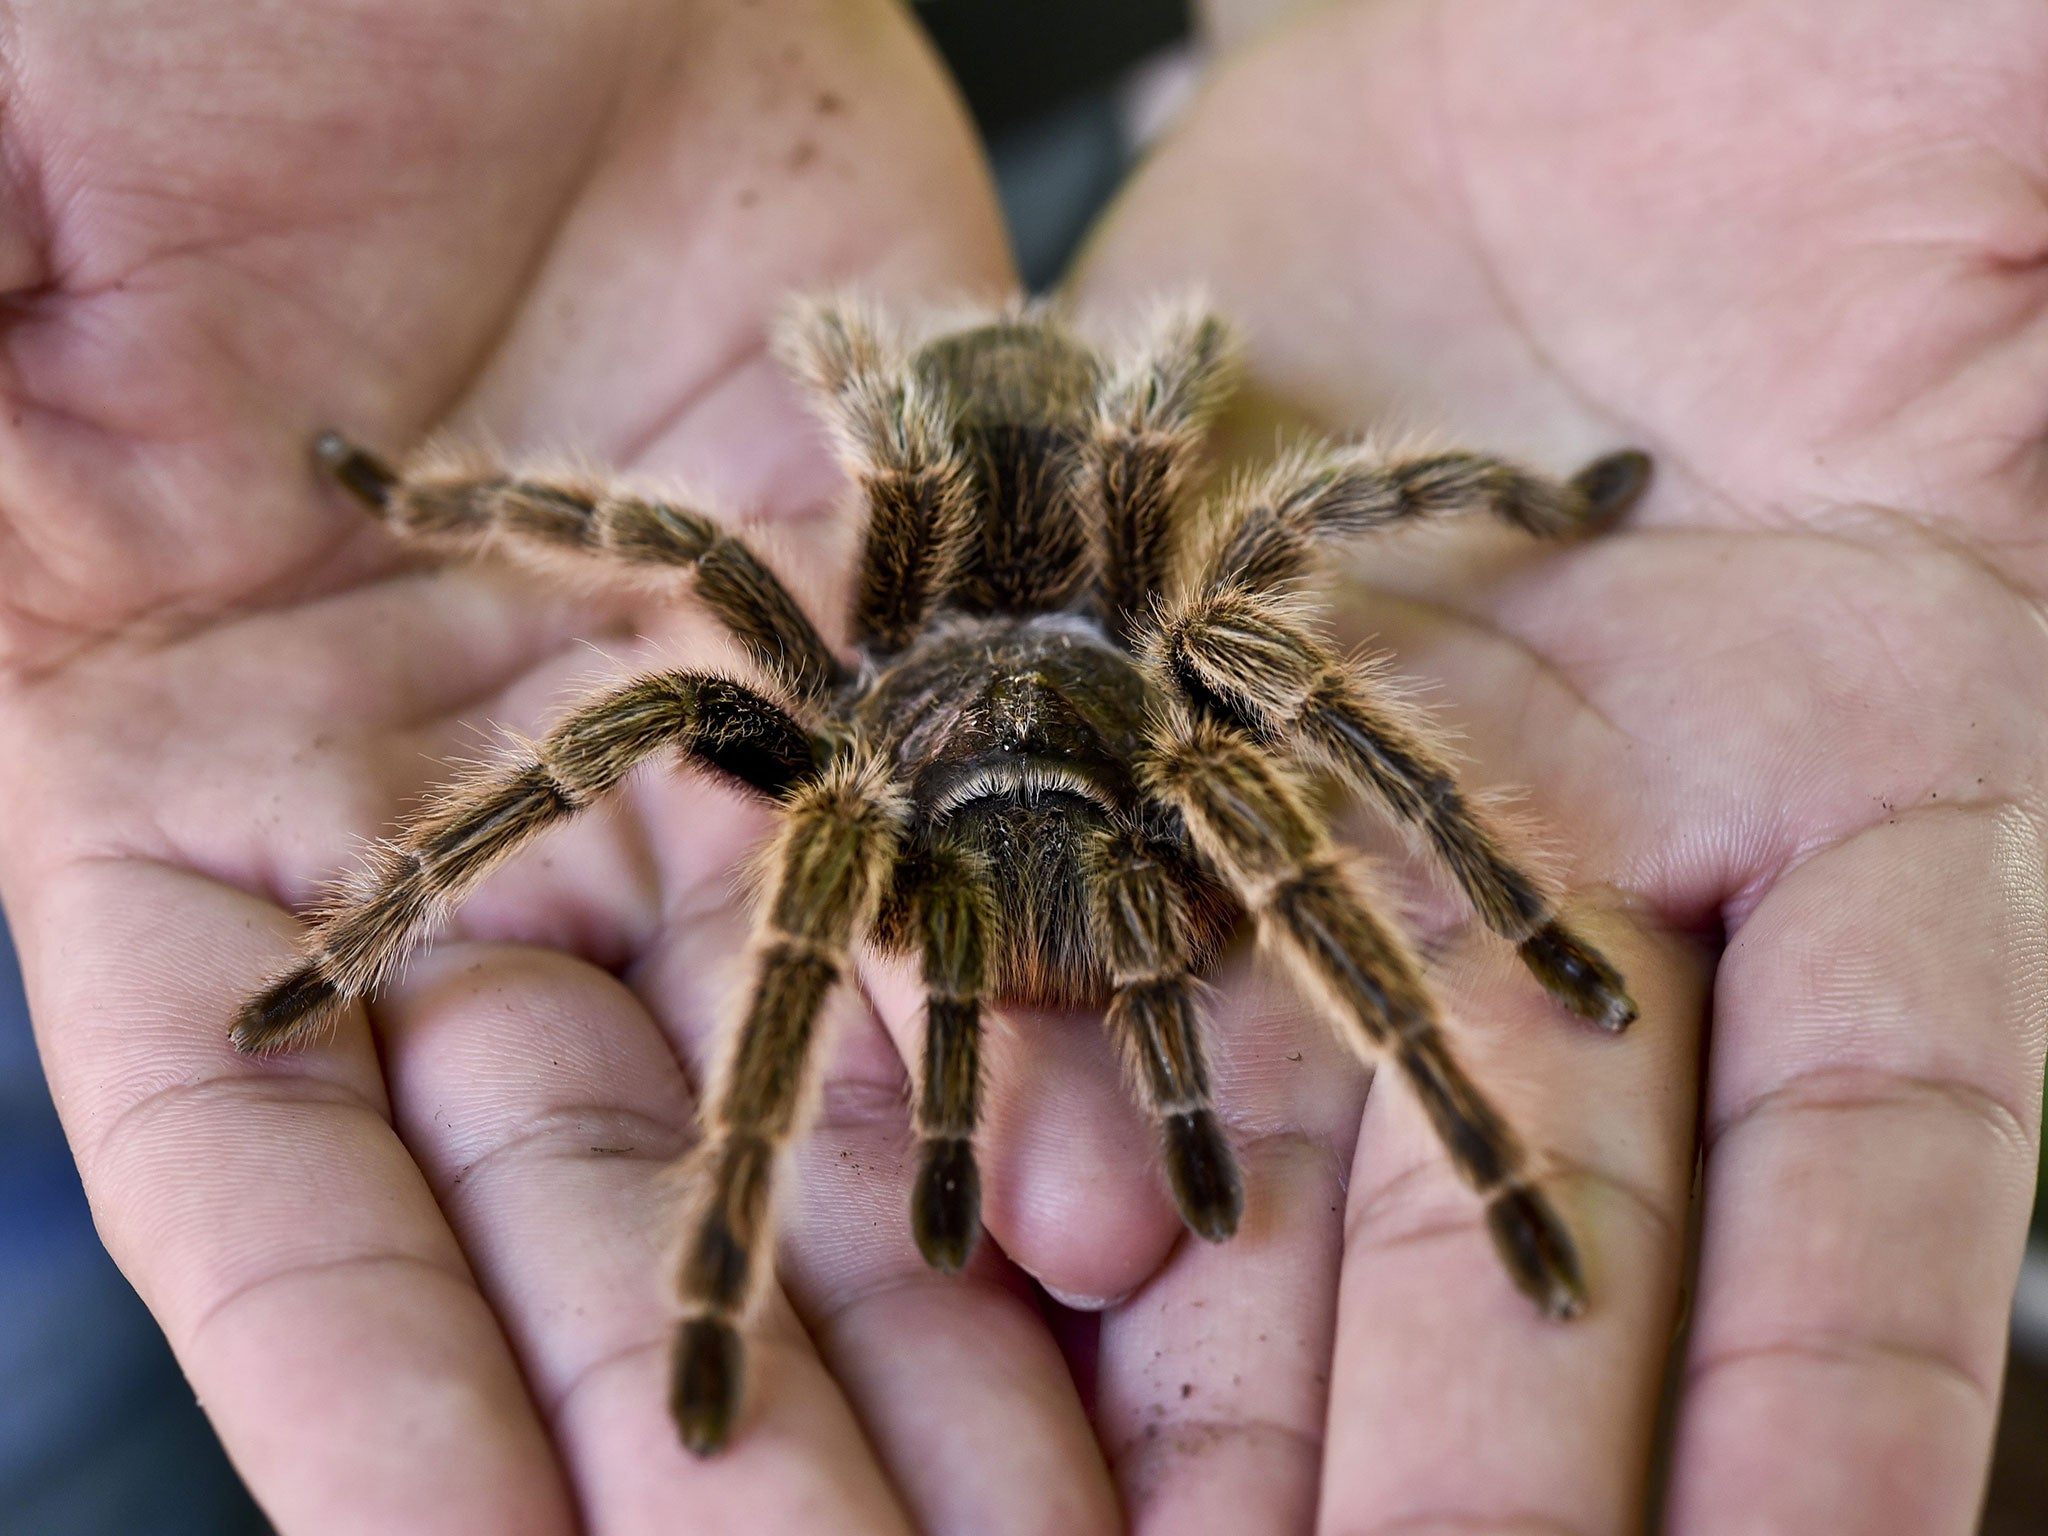 Fear of spiders became part of our DNA during evolution, say scientists